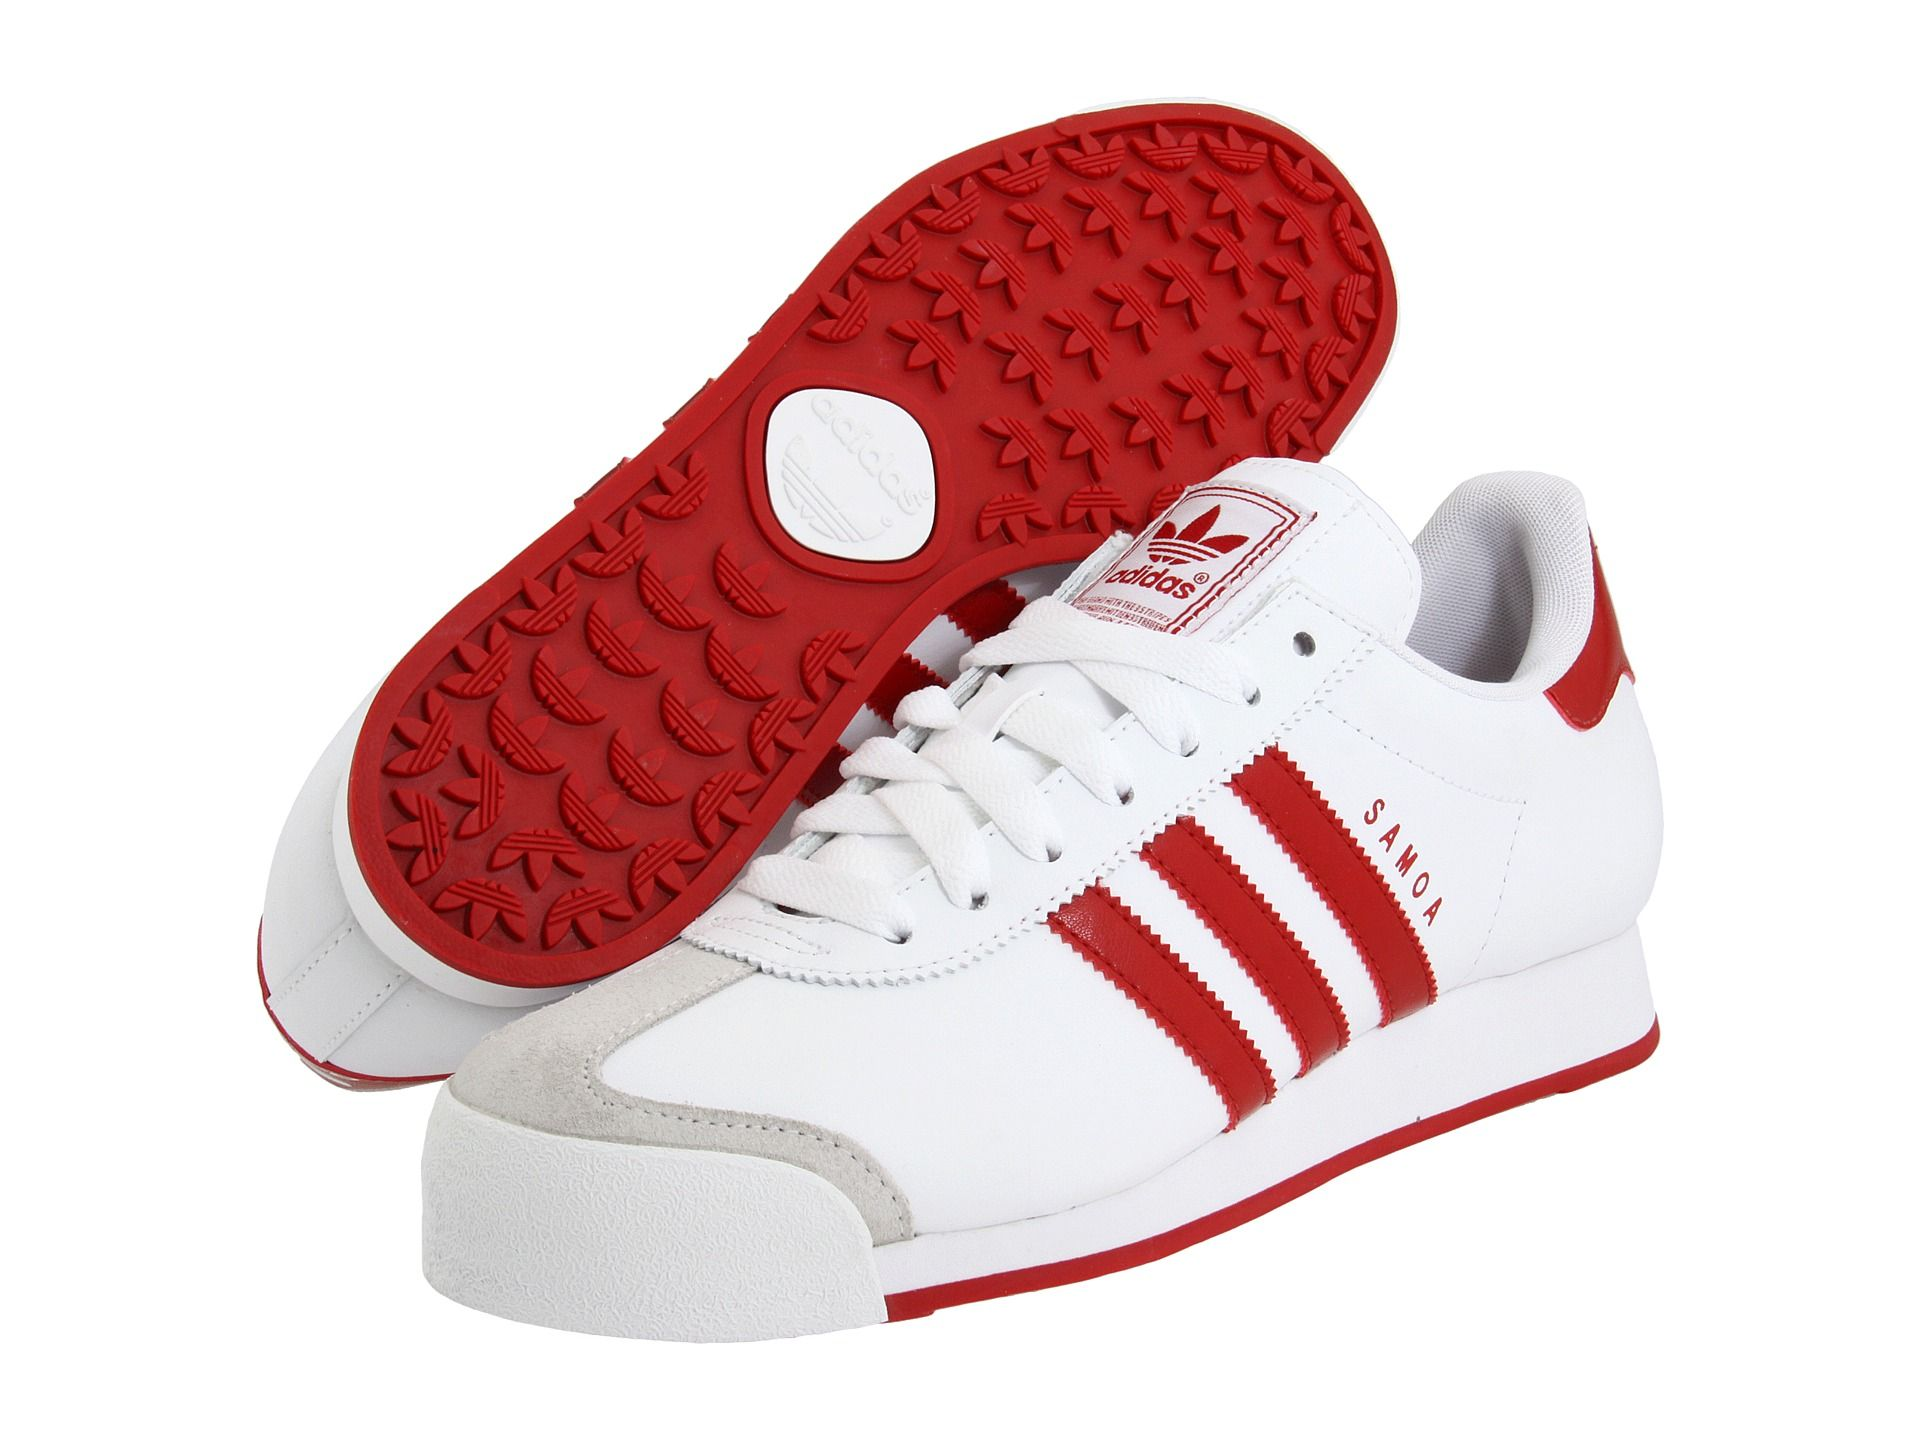 f4257ee6bcf5d3 adidas Originals Samoa White University Red University Red - Zappos.com  Free Shipping BOTH Ways